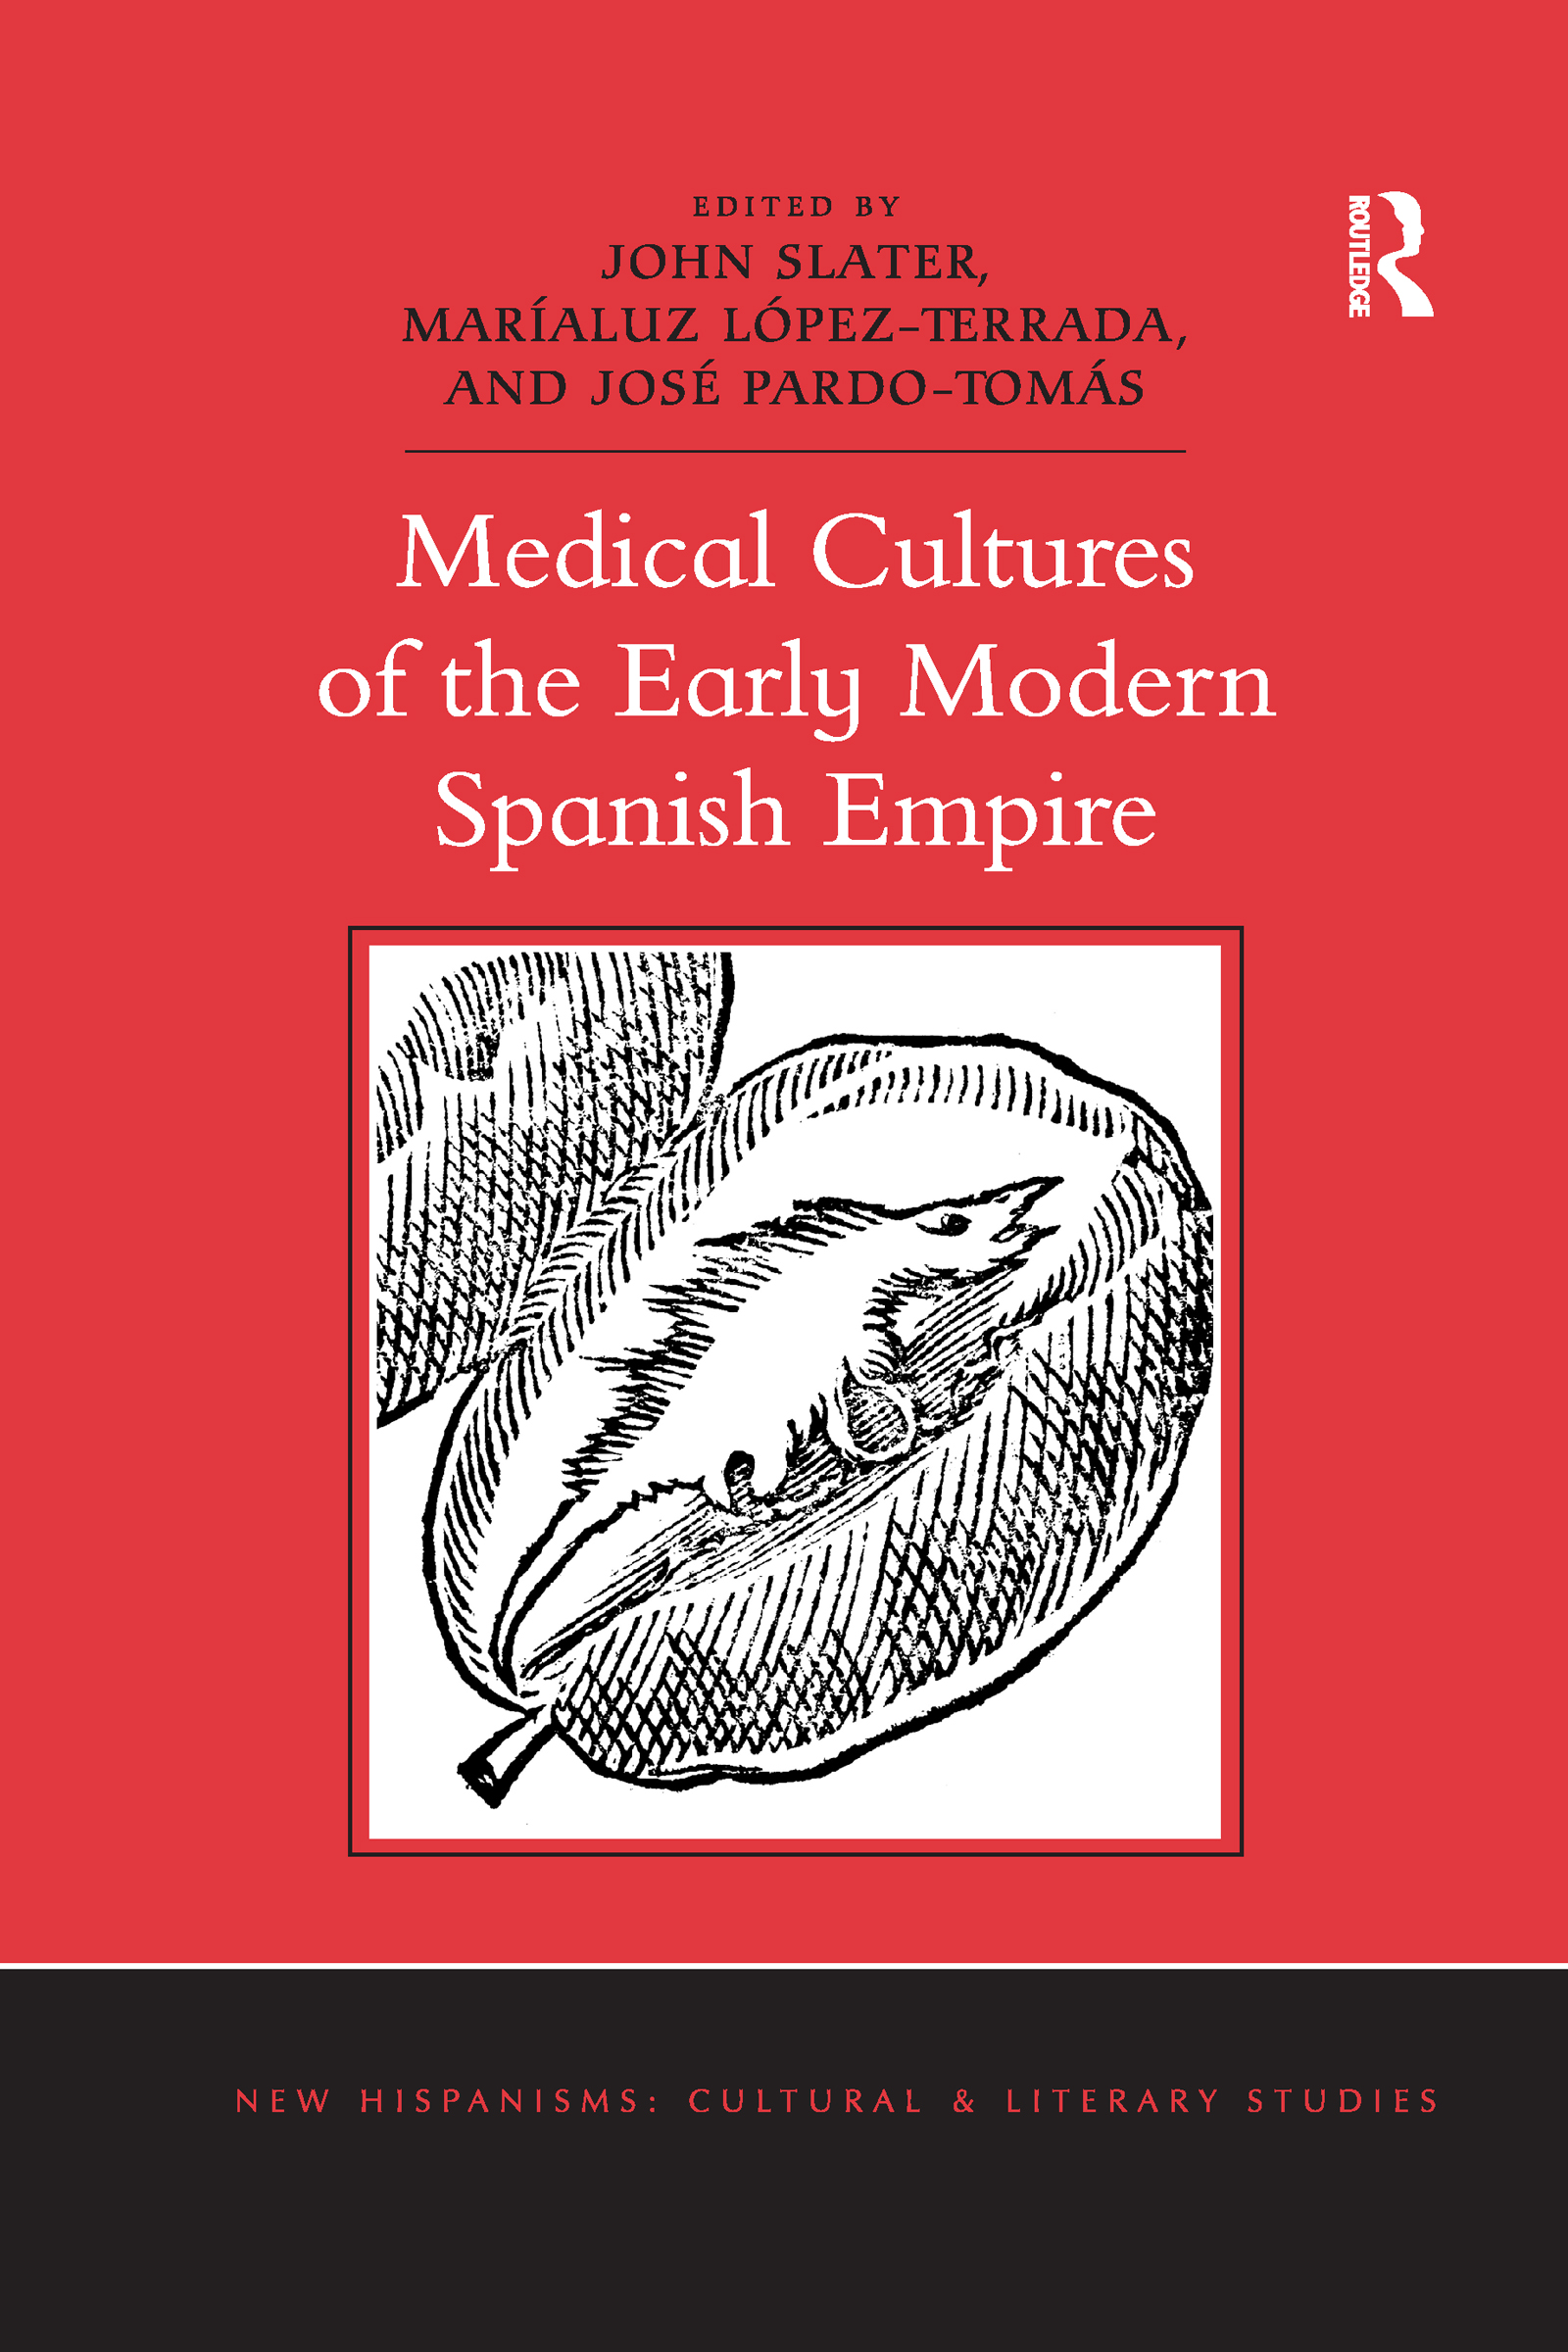 Medical Cultures of the Early Modern Spanish Empire